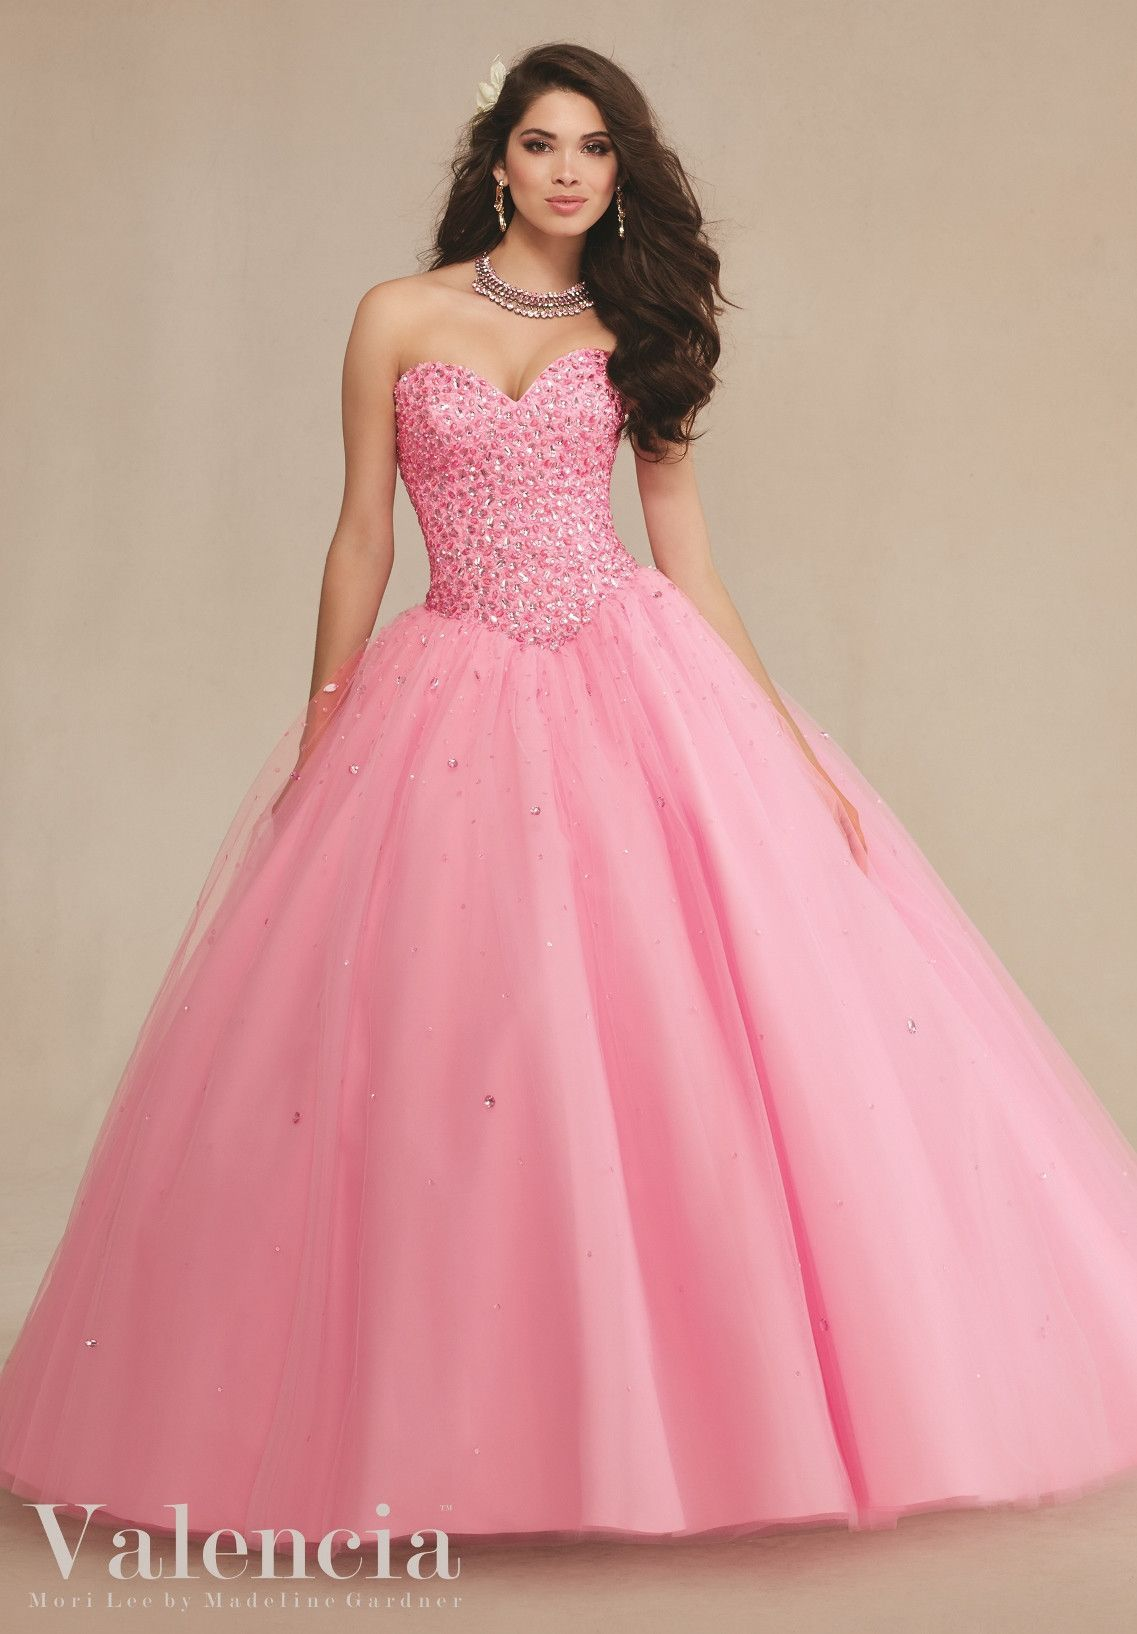 Mori Lee Valencia Quinceanera Dress 89087 | Vestiditos, Vestido de ...